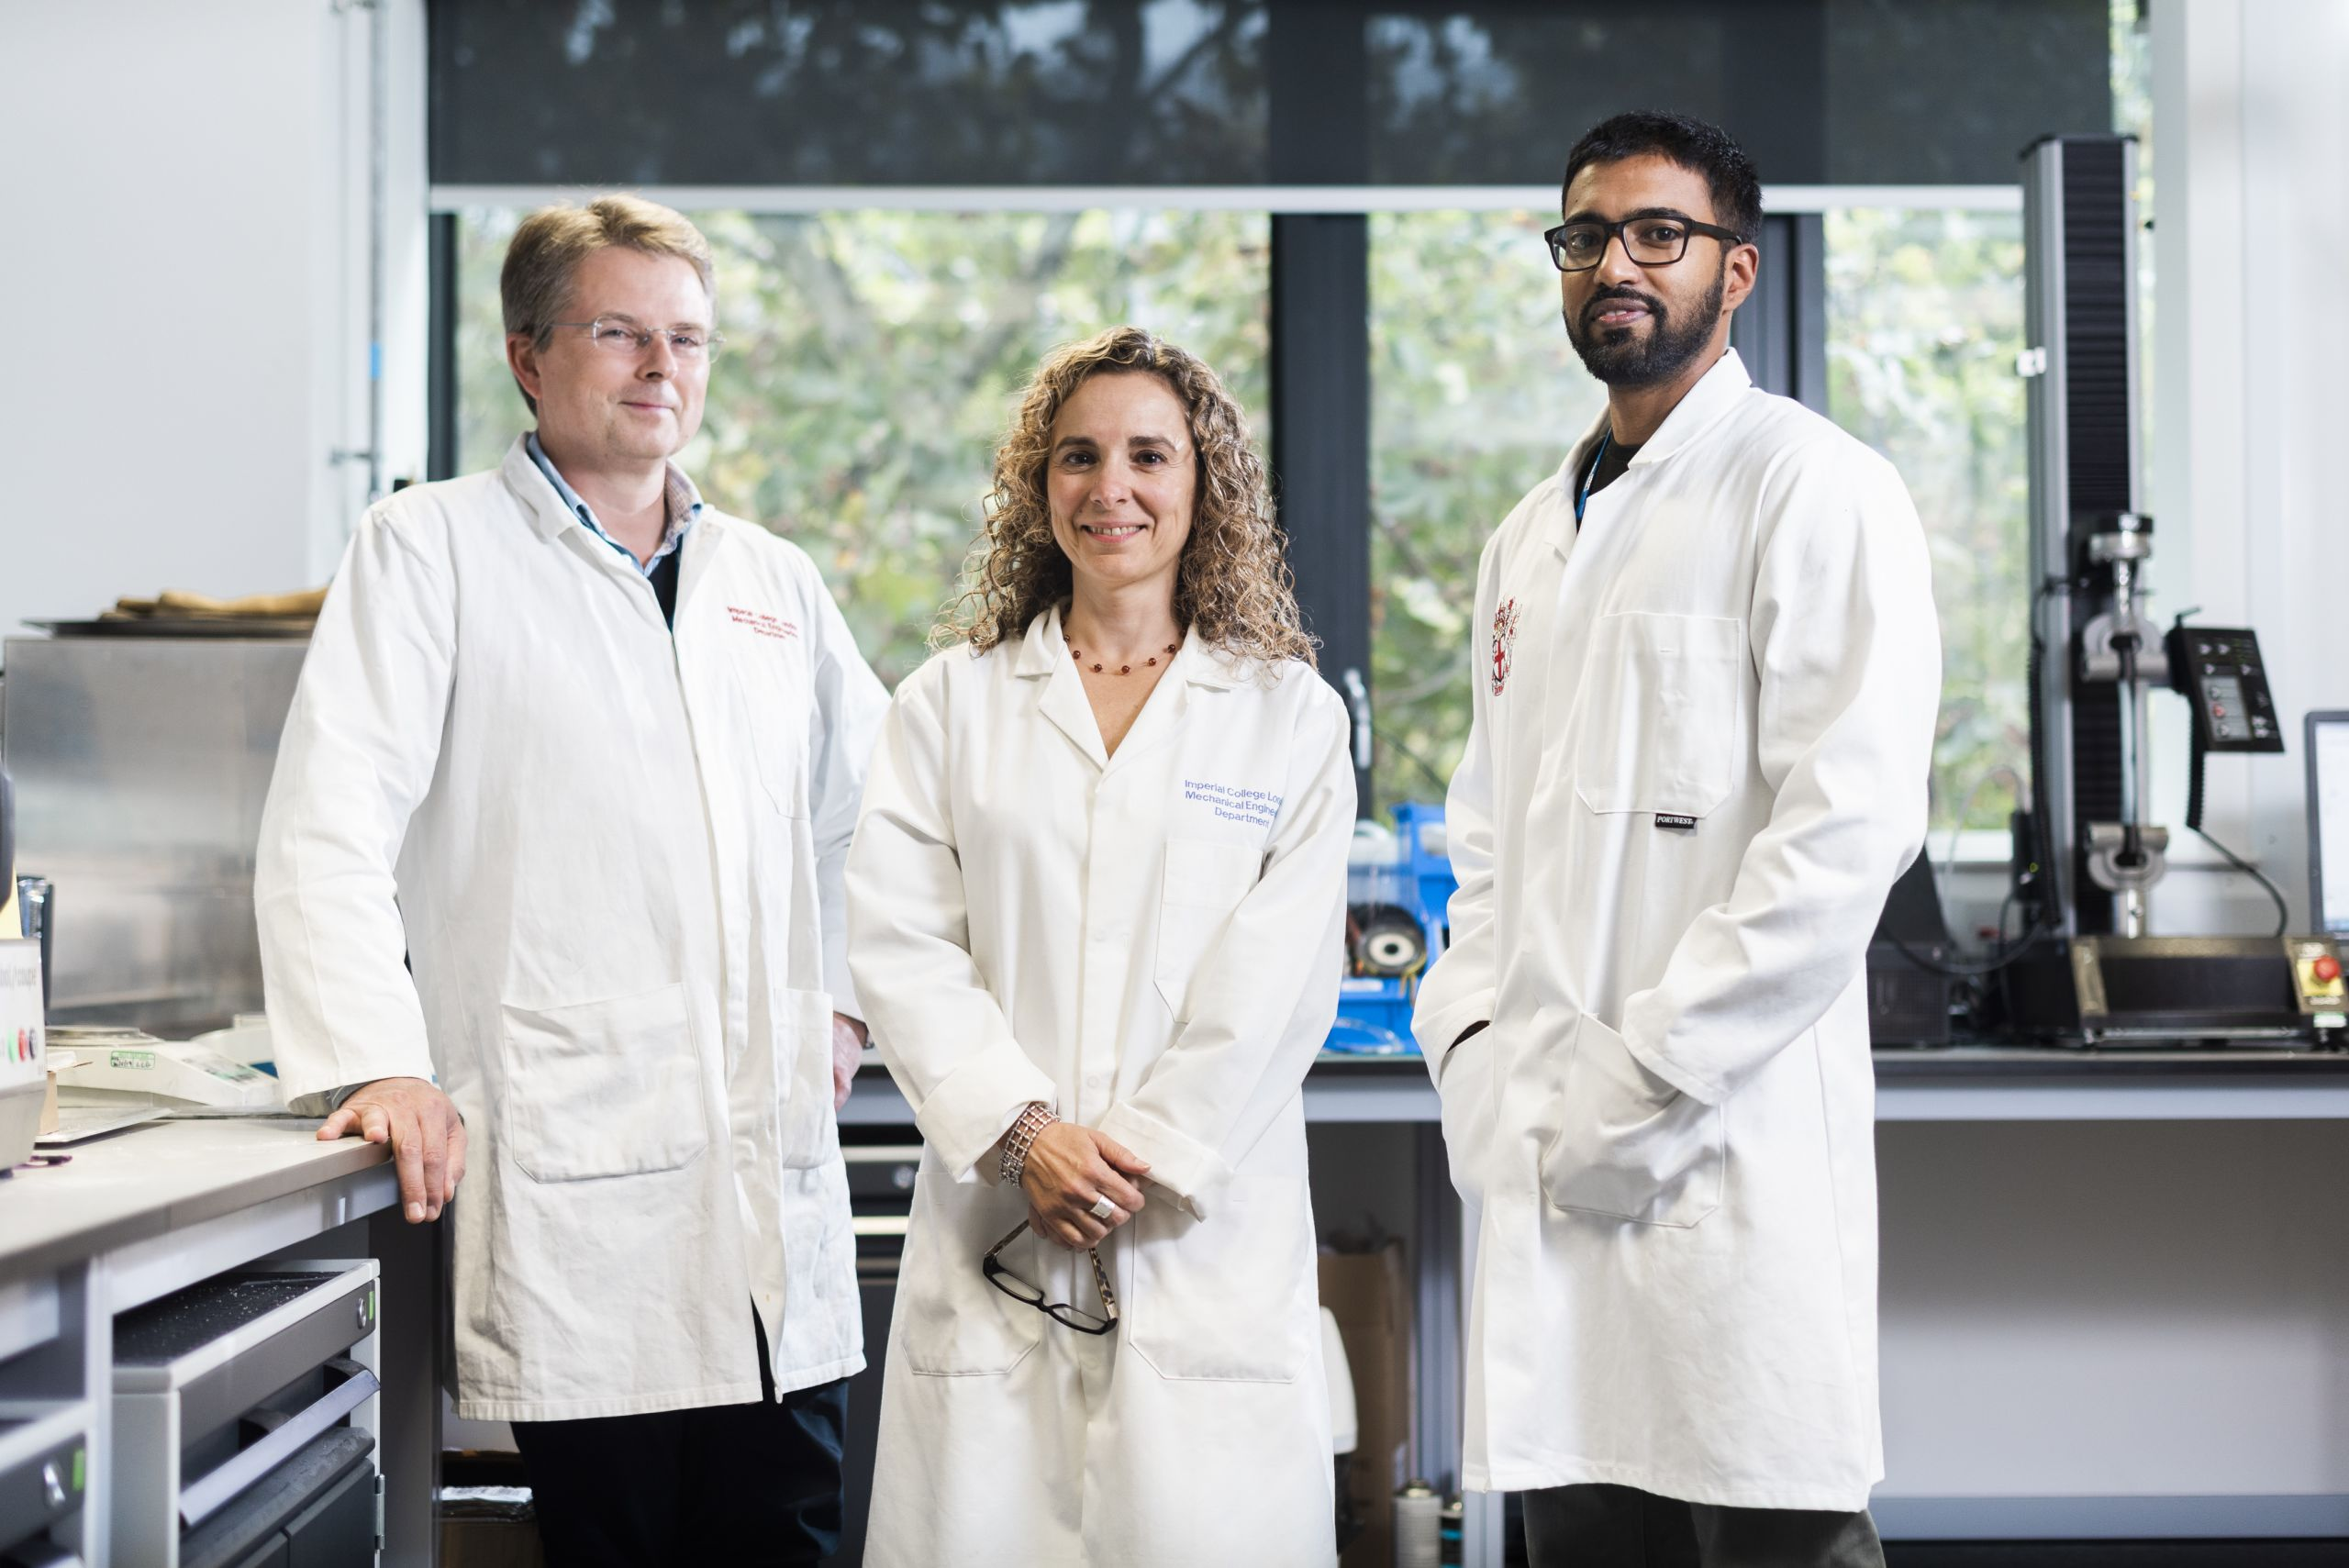 Dr Bamber Blackman, Professor Maria Charalambides and Dr Manu Mulakkal in the Department of Mechanical Engineering, who are working on innovative multilayer packaging.